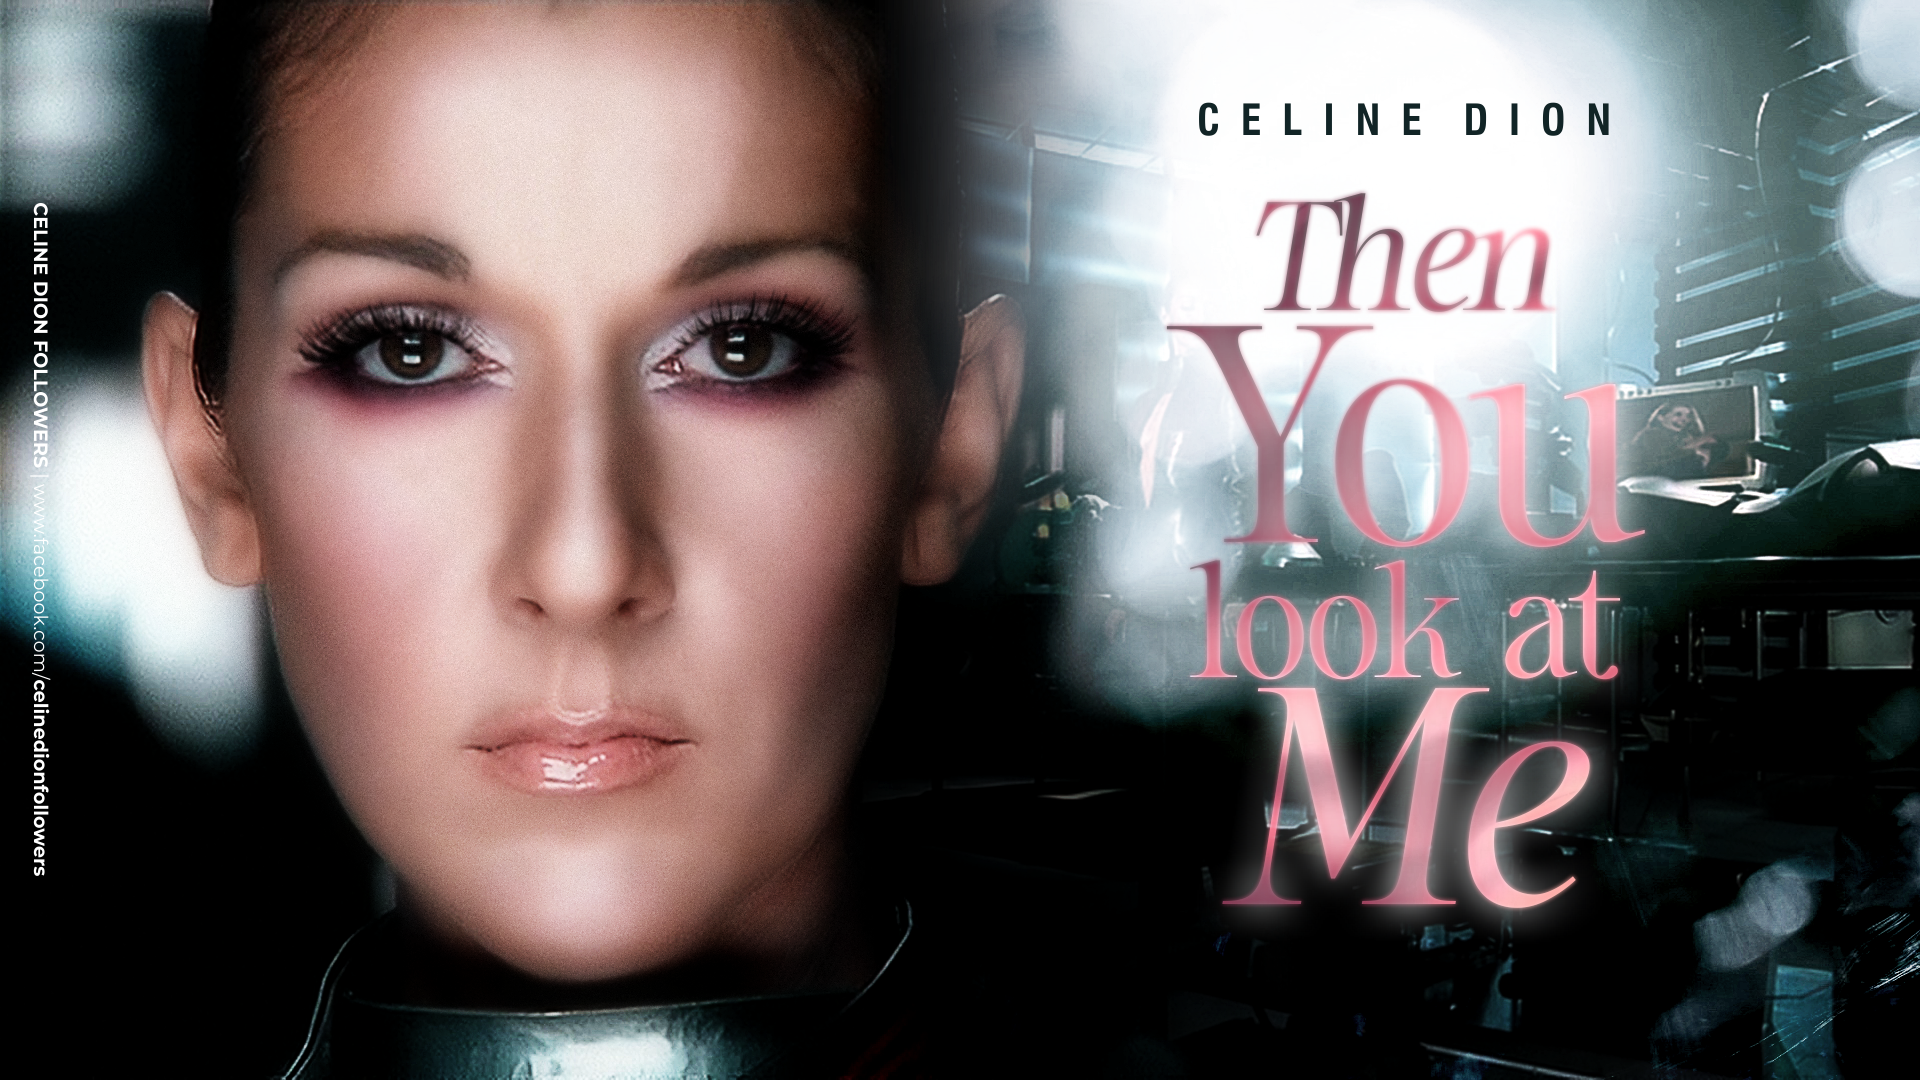 Then You Look At Me - designed by blacktooth for celinedionfollowers